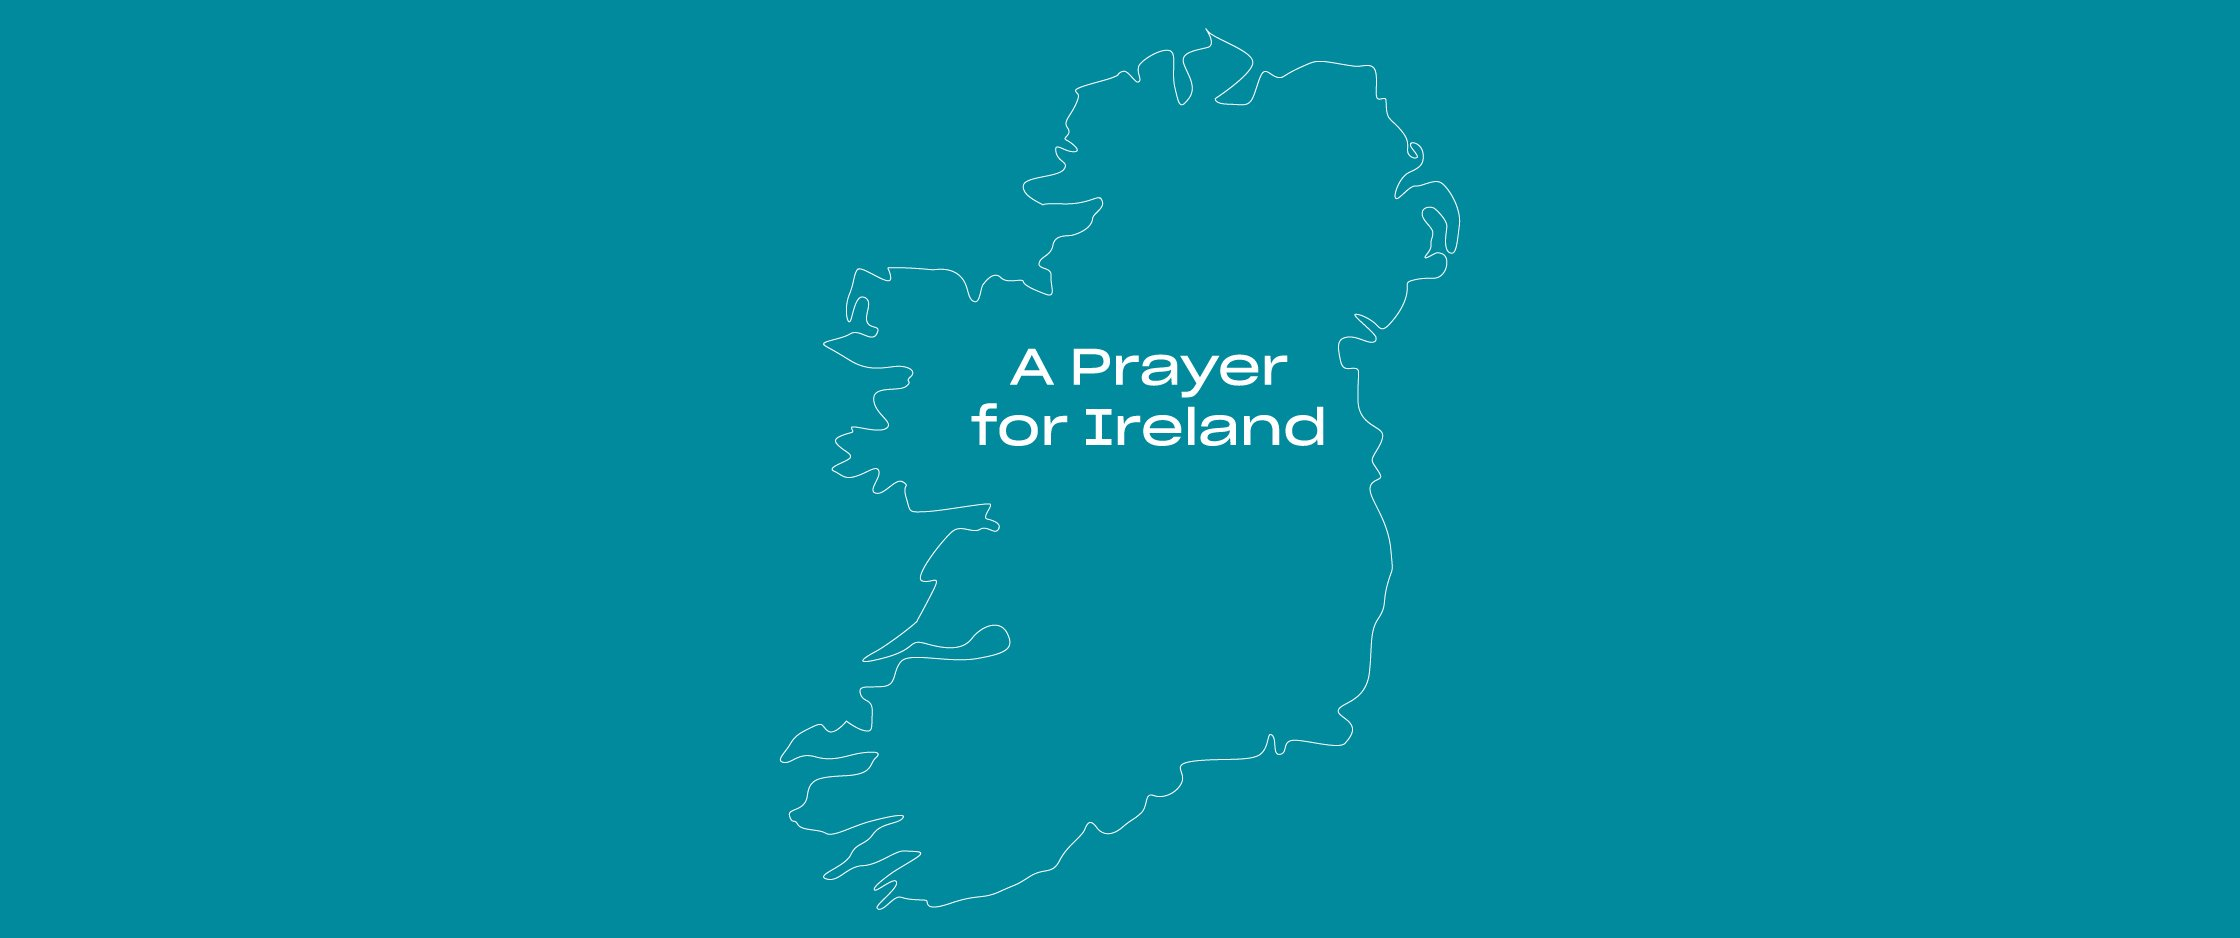 Join us today in praying for Ireland